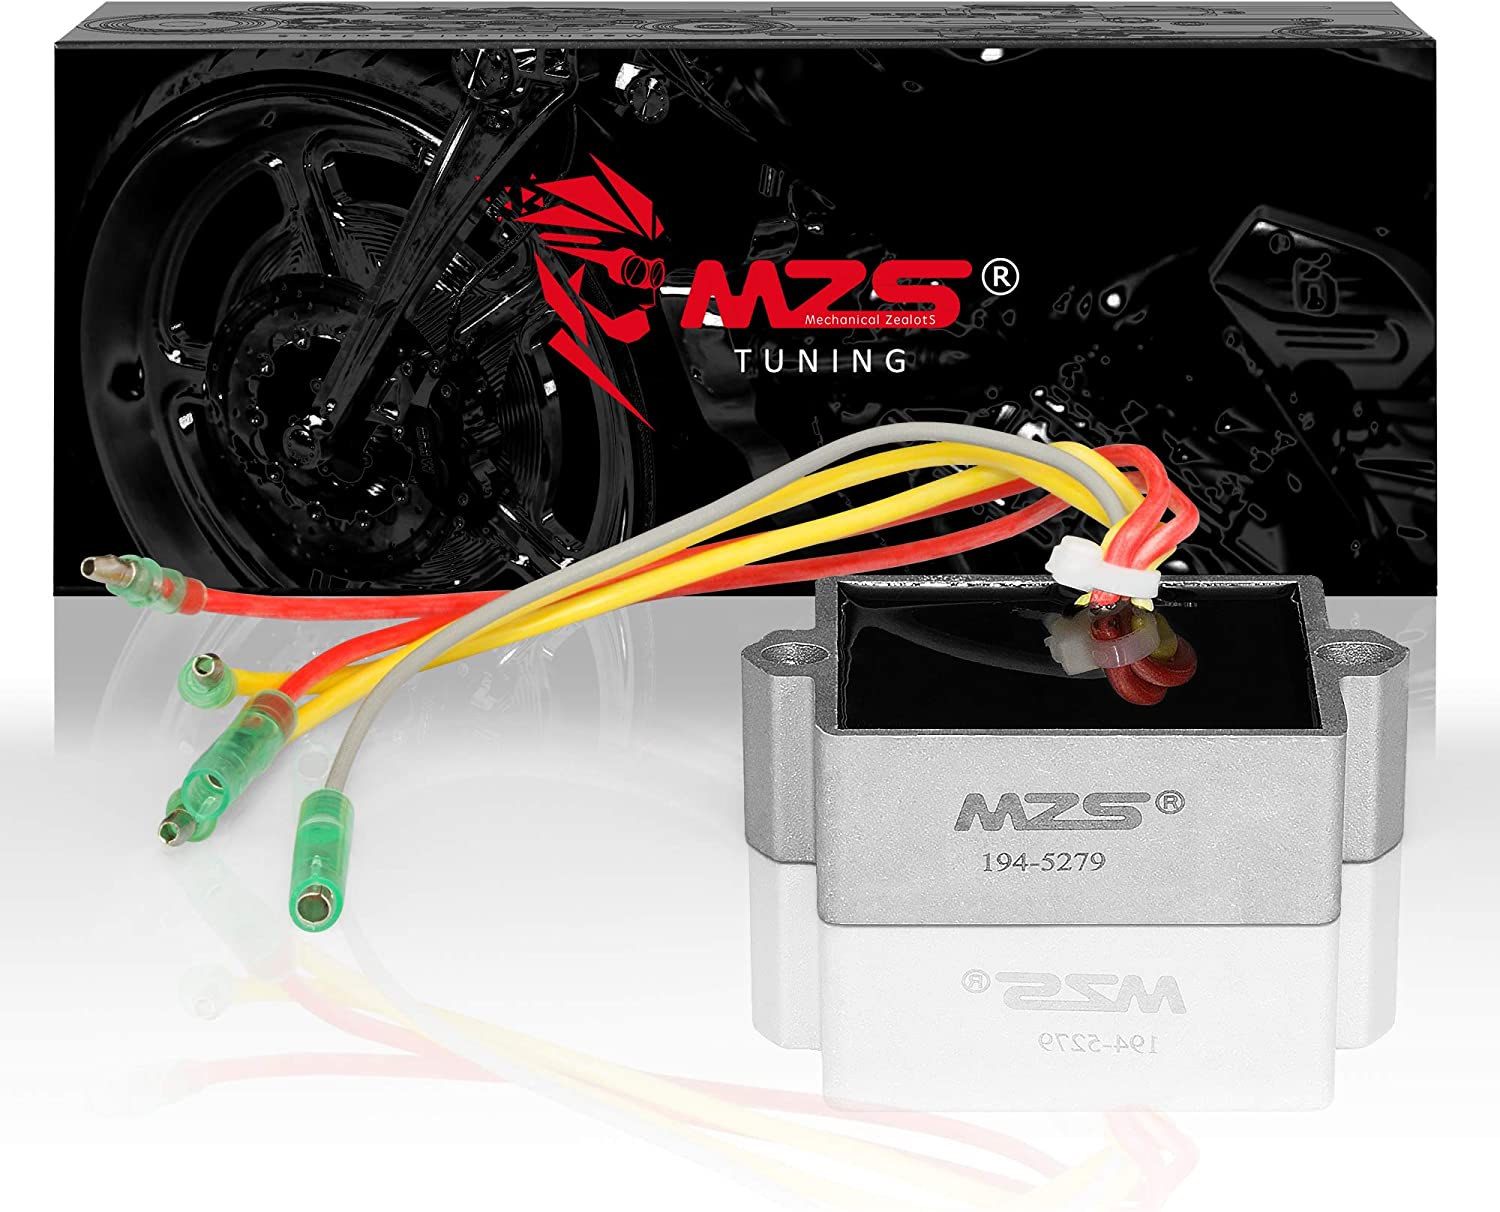 MZS 194-5279 Regulator Rectifier Voltage Compatible with Mercury Mariner Outboard 5 Wires 25 to 250 HP Replace 815279-1 815279-2 815279-3 815279-4 815279-5 65W-81960-00-00 65W-81960-10-00